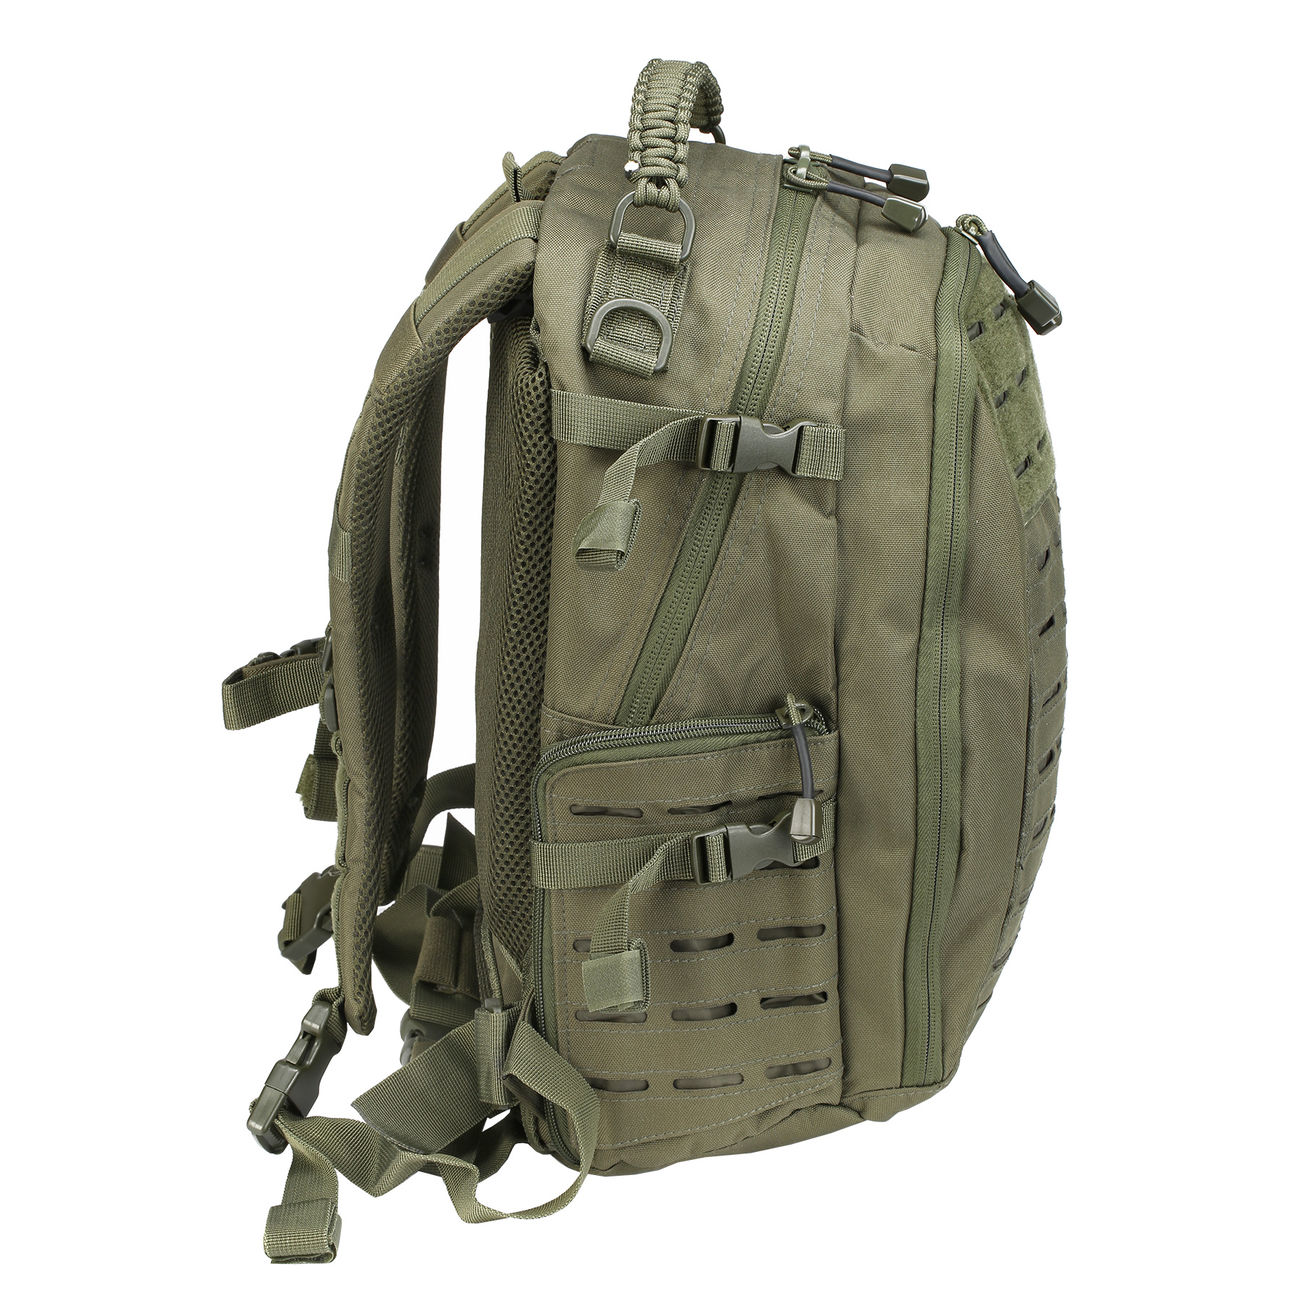 Mil-Tec Rucksack Mission Pack Laser Cut Small oliv 1